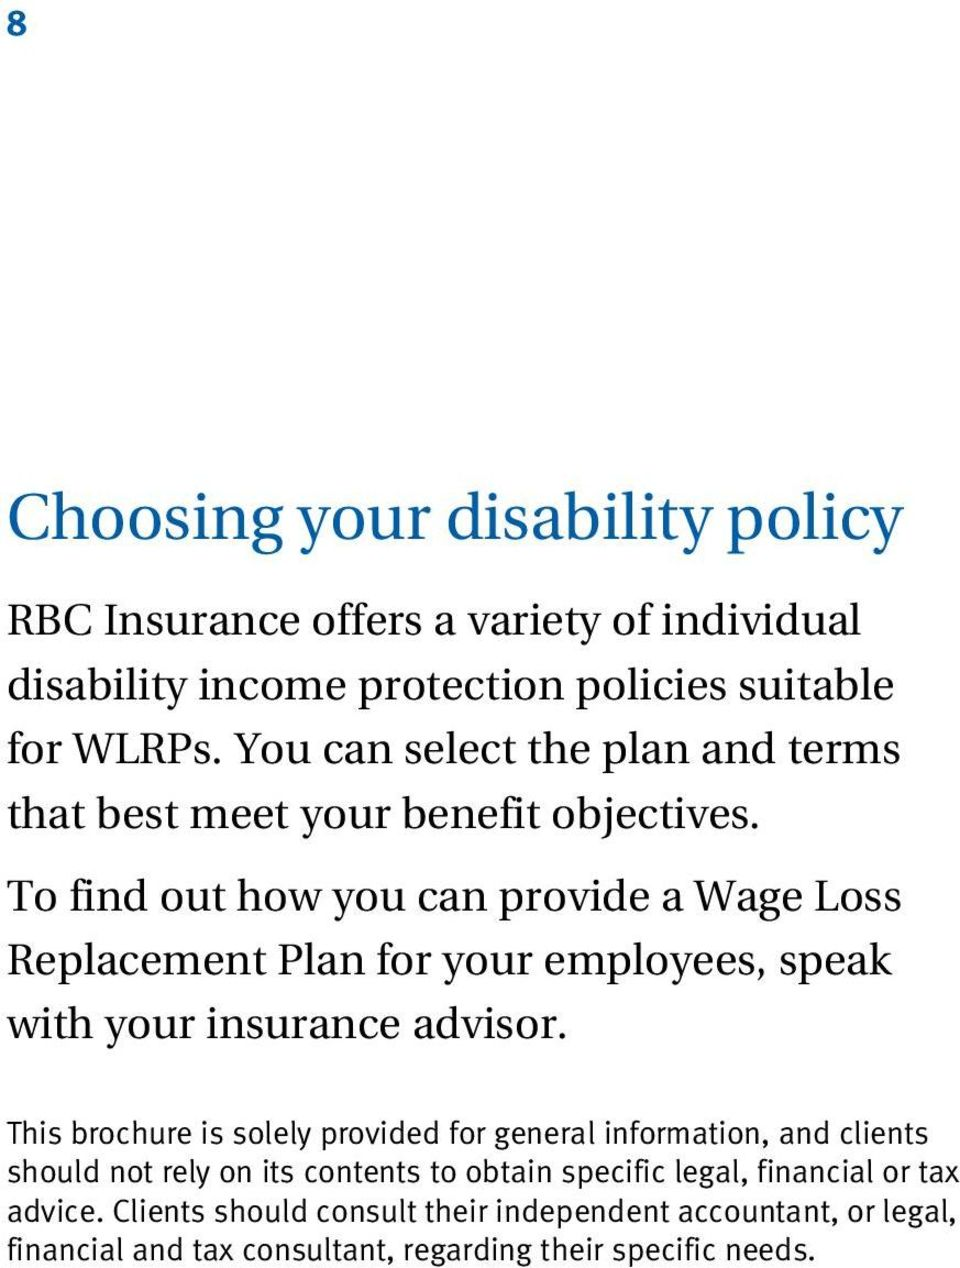 To find out how you can provide a Wage Loss Replacement Plan for your employees, speak with your insurance advisor.